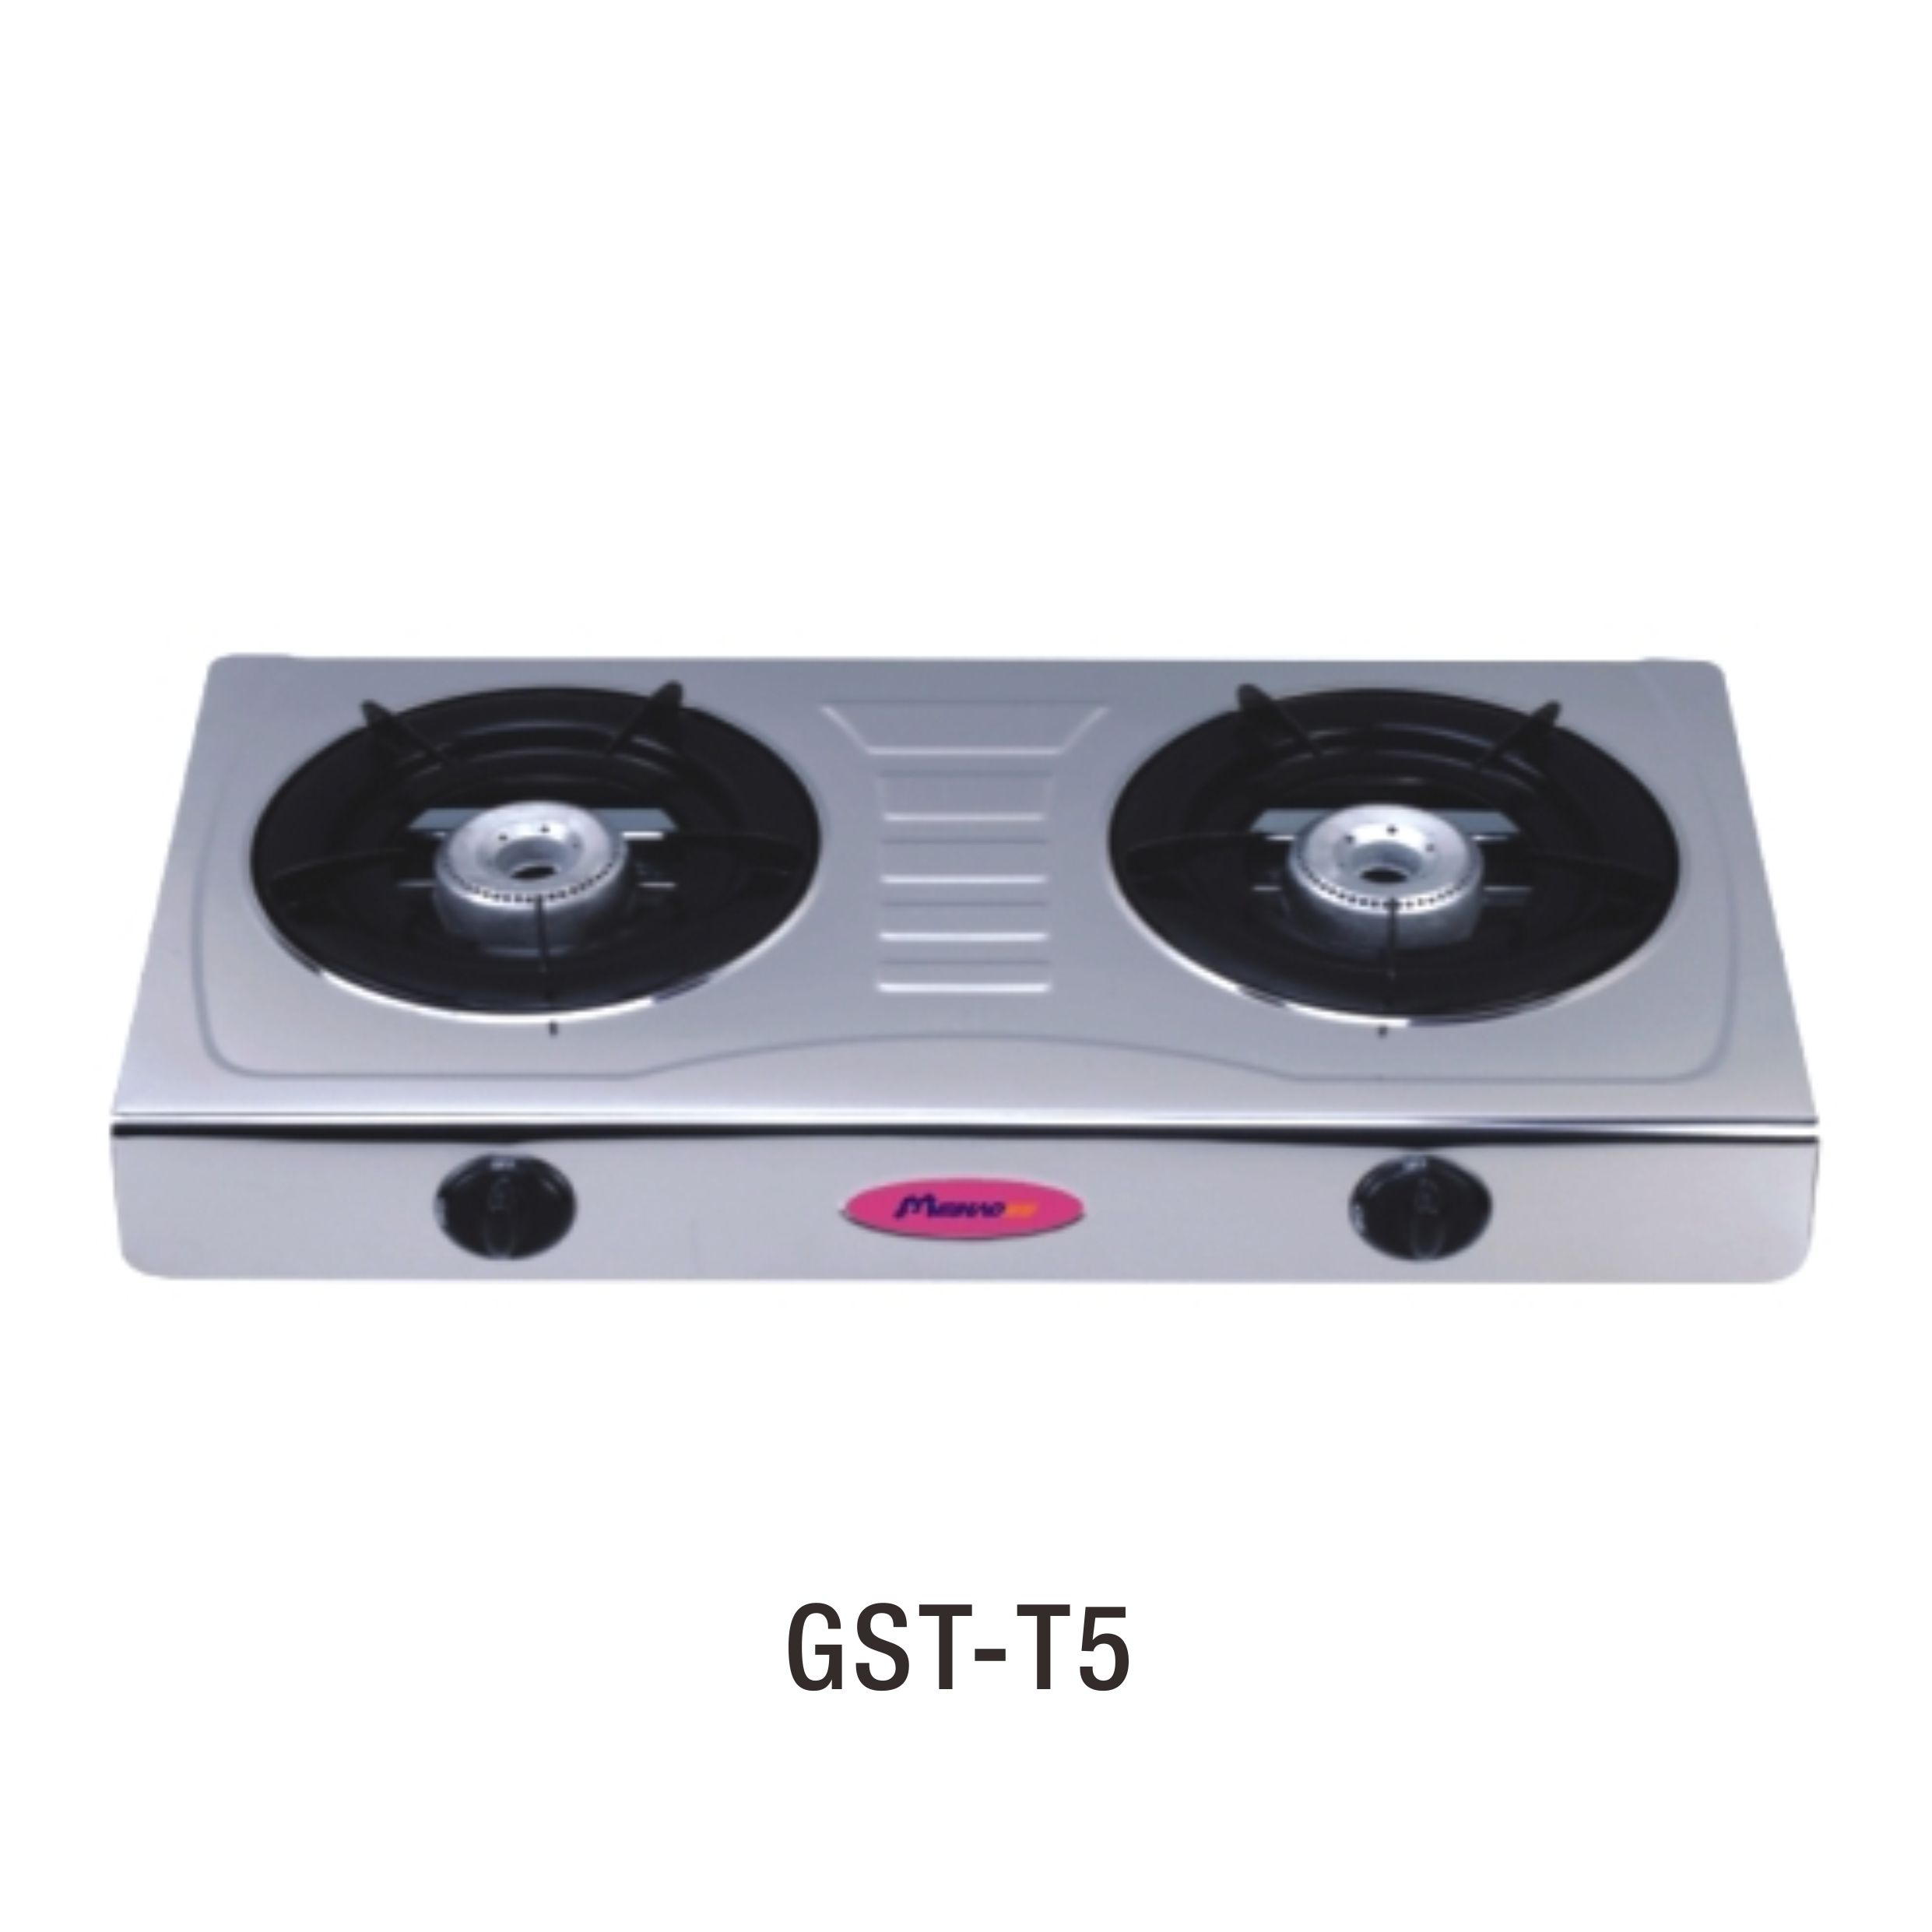 Home appliance GST-T5 2 burner stainless steel table top gas stove / cooktop